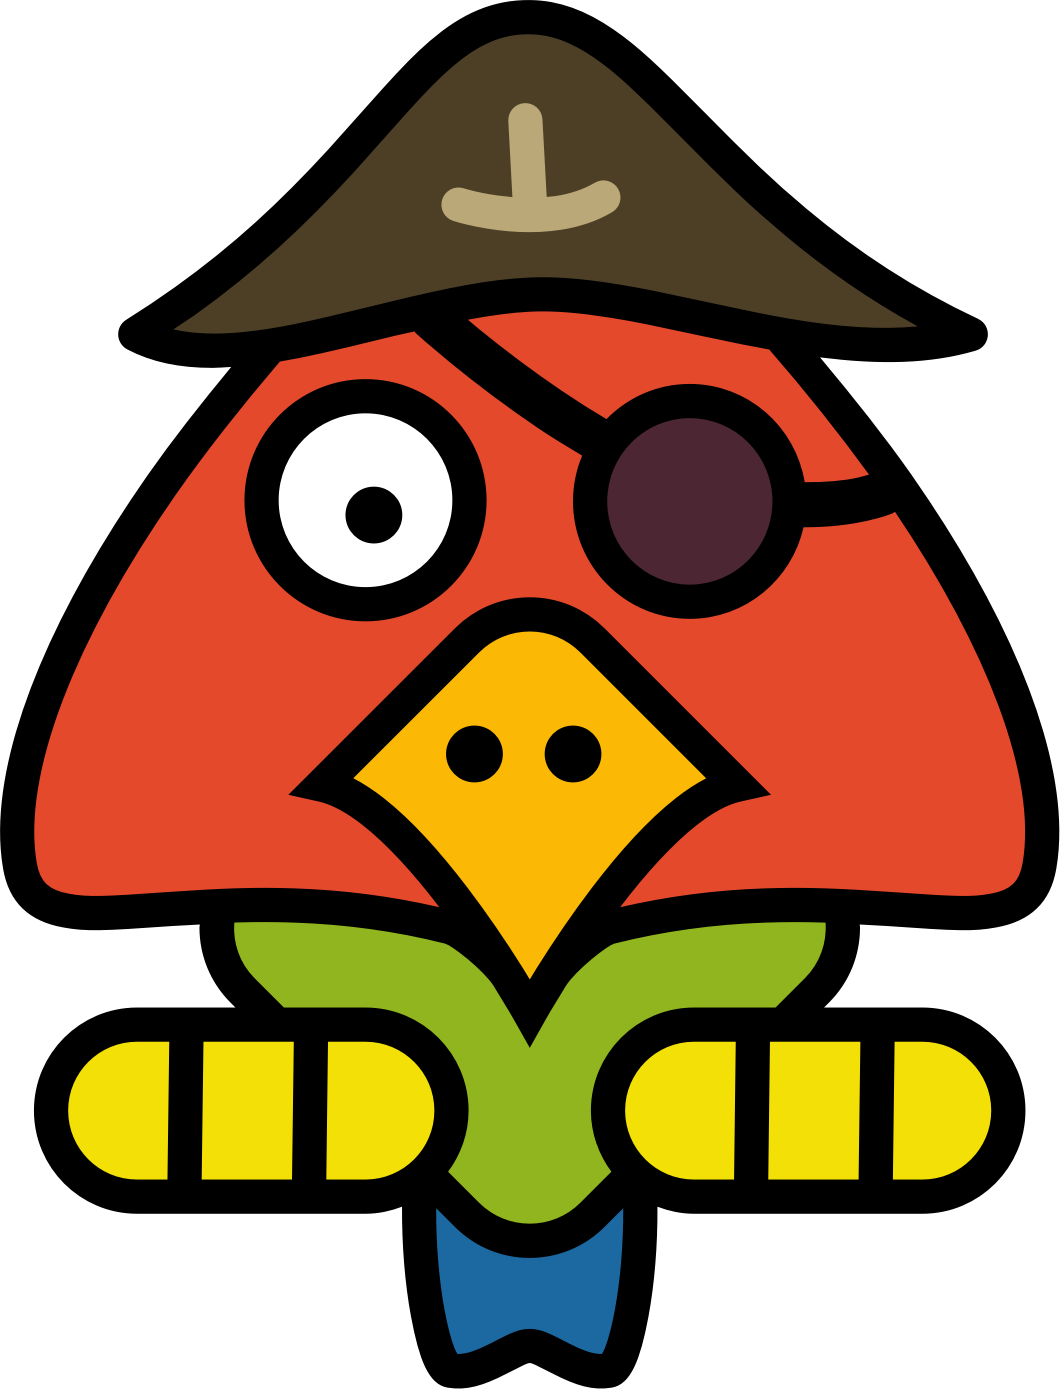 Pirate Parrot by Klàro